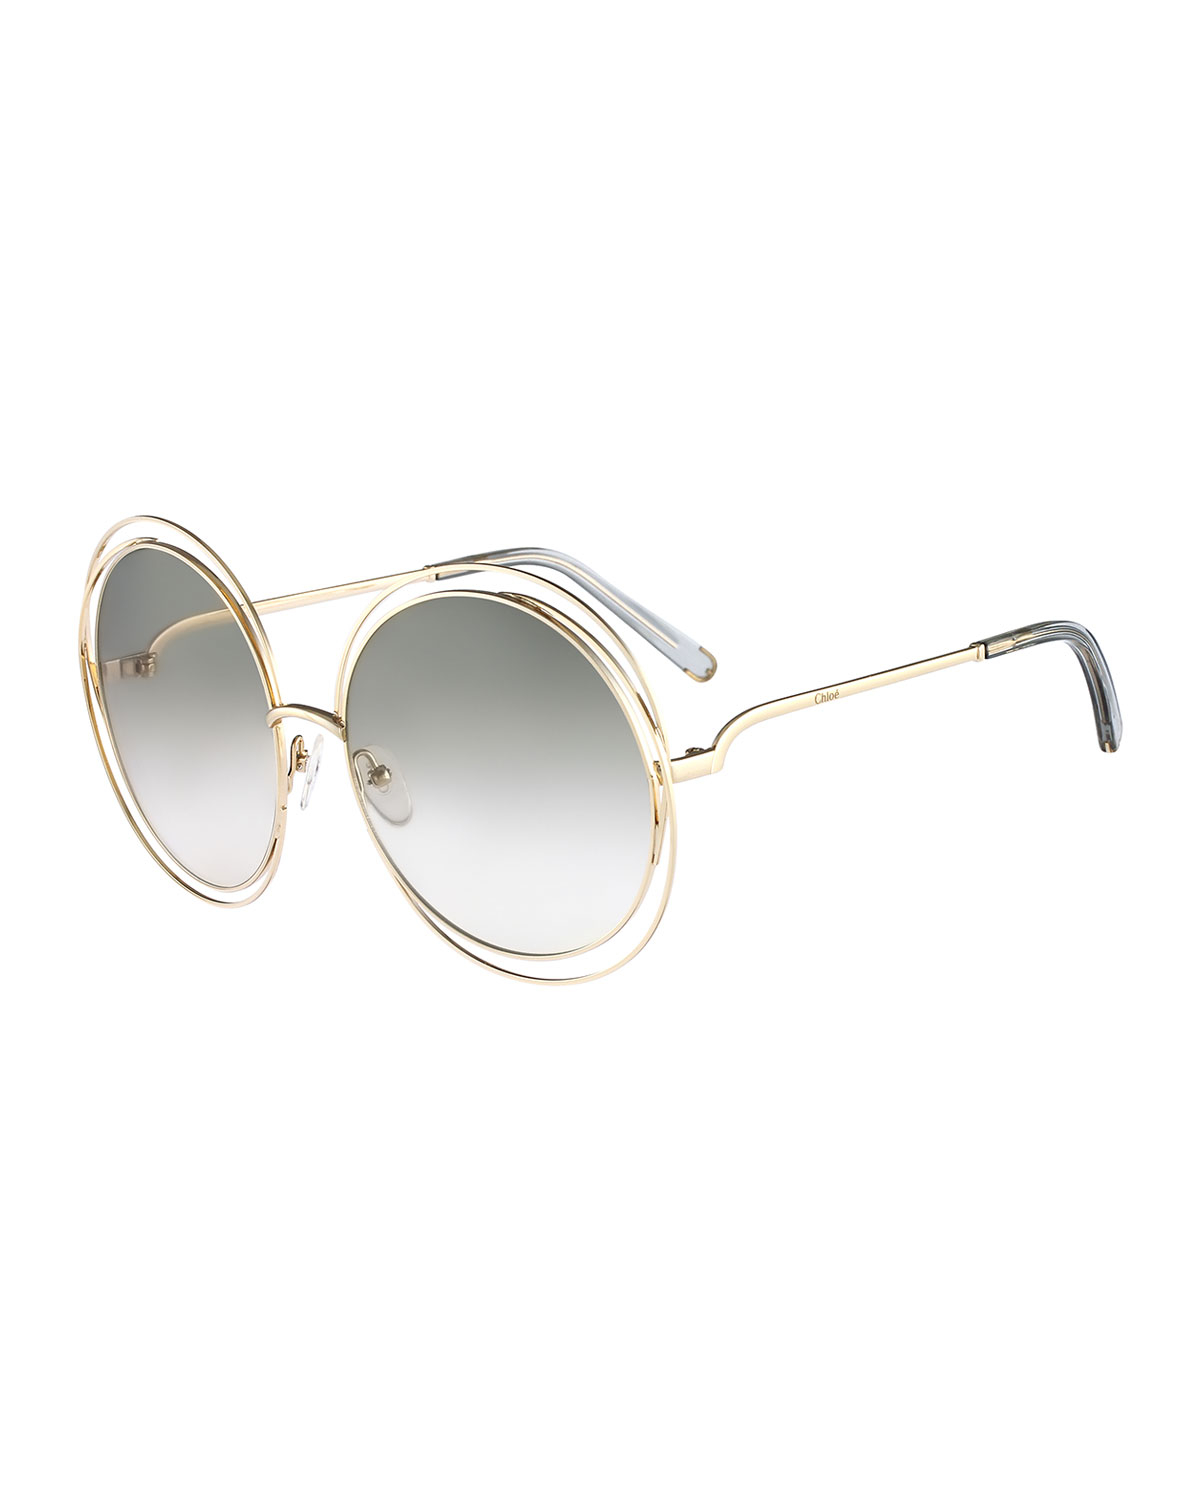 Chloe Carlina Round Wire-frame Sunglasses in Gold Lyst